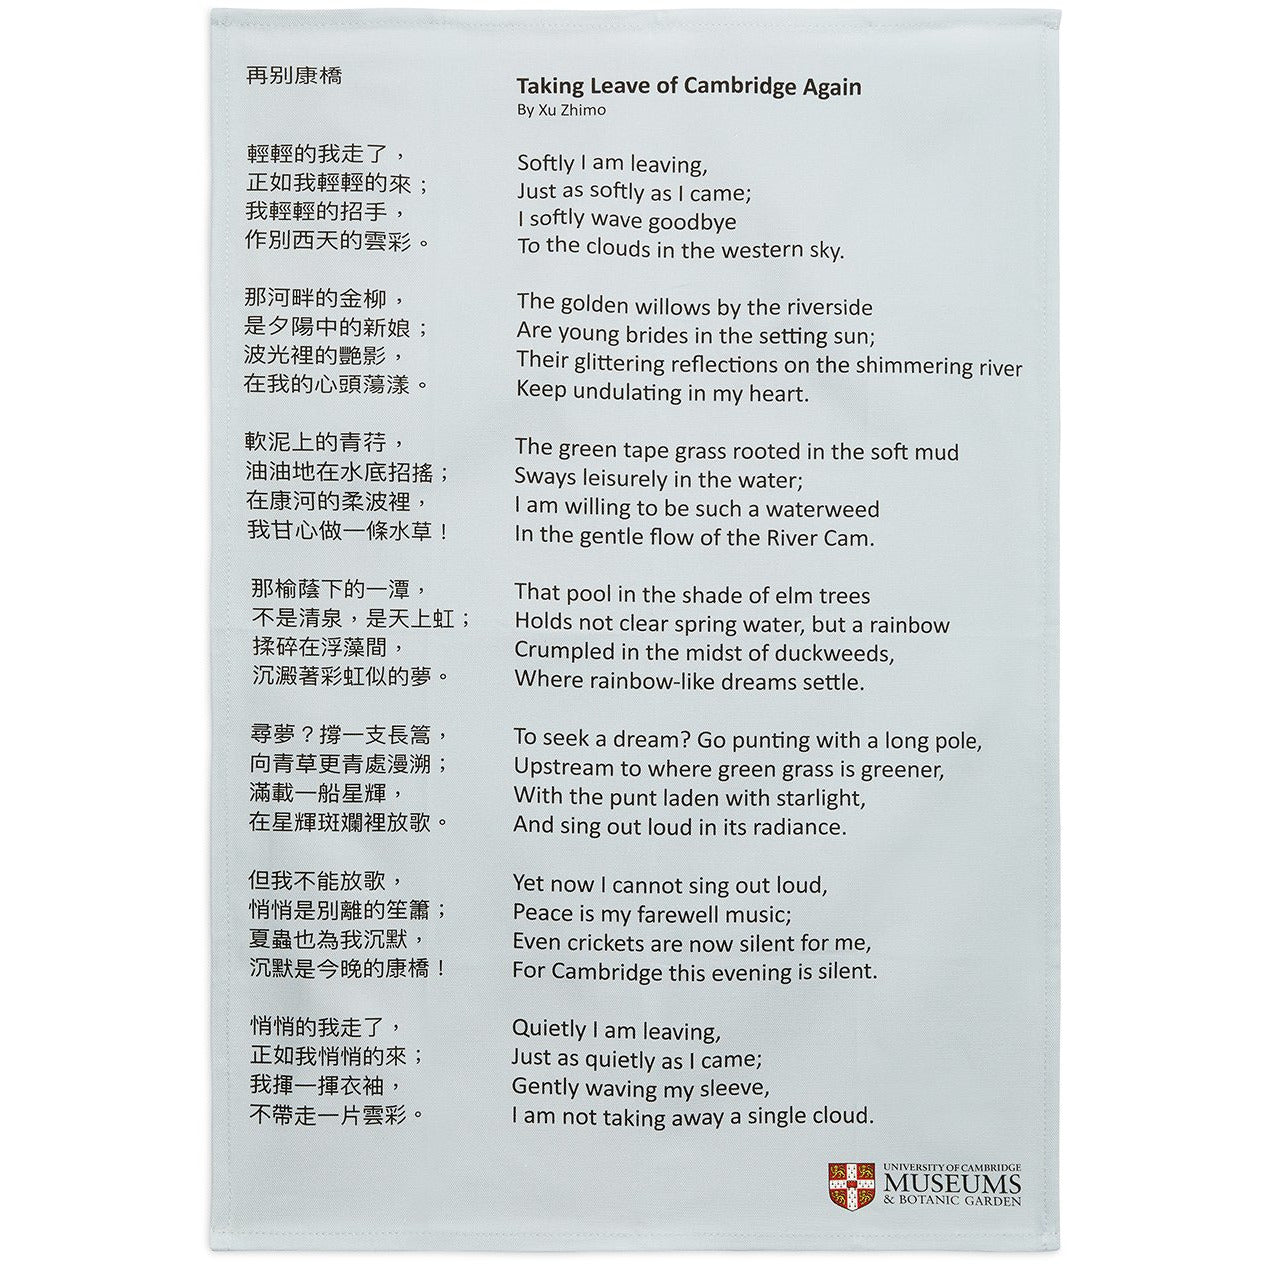 Featured image for the project: Xu Zhimo, Taking Leave of Cambridge Again - tea towel